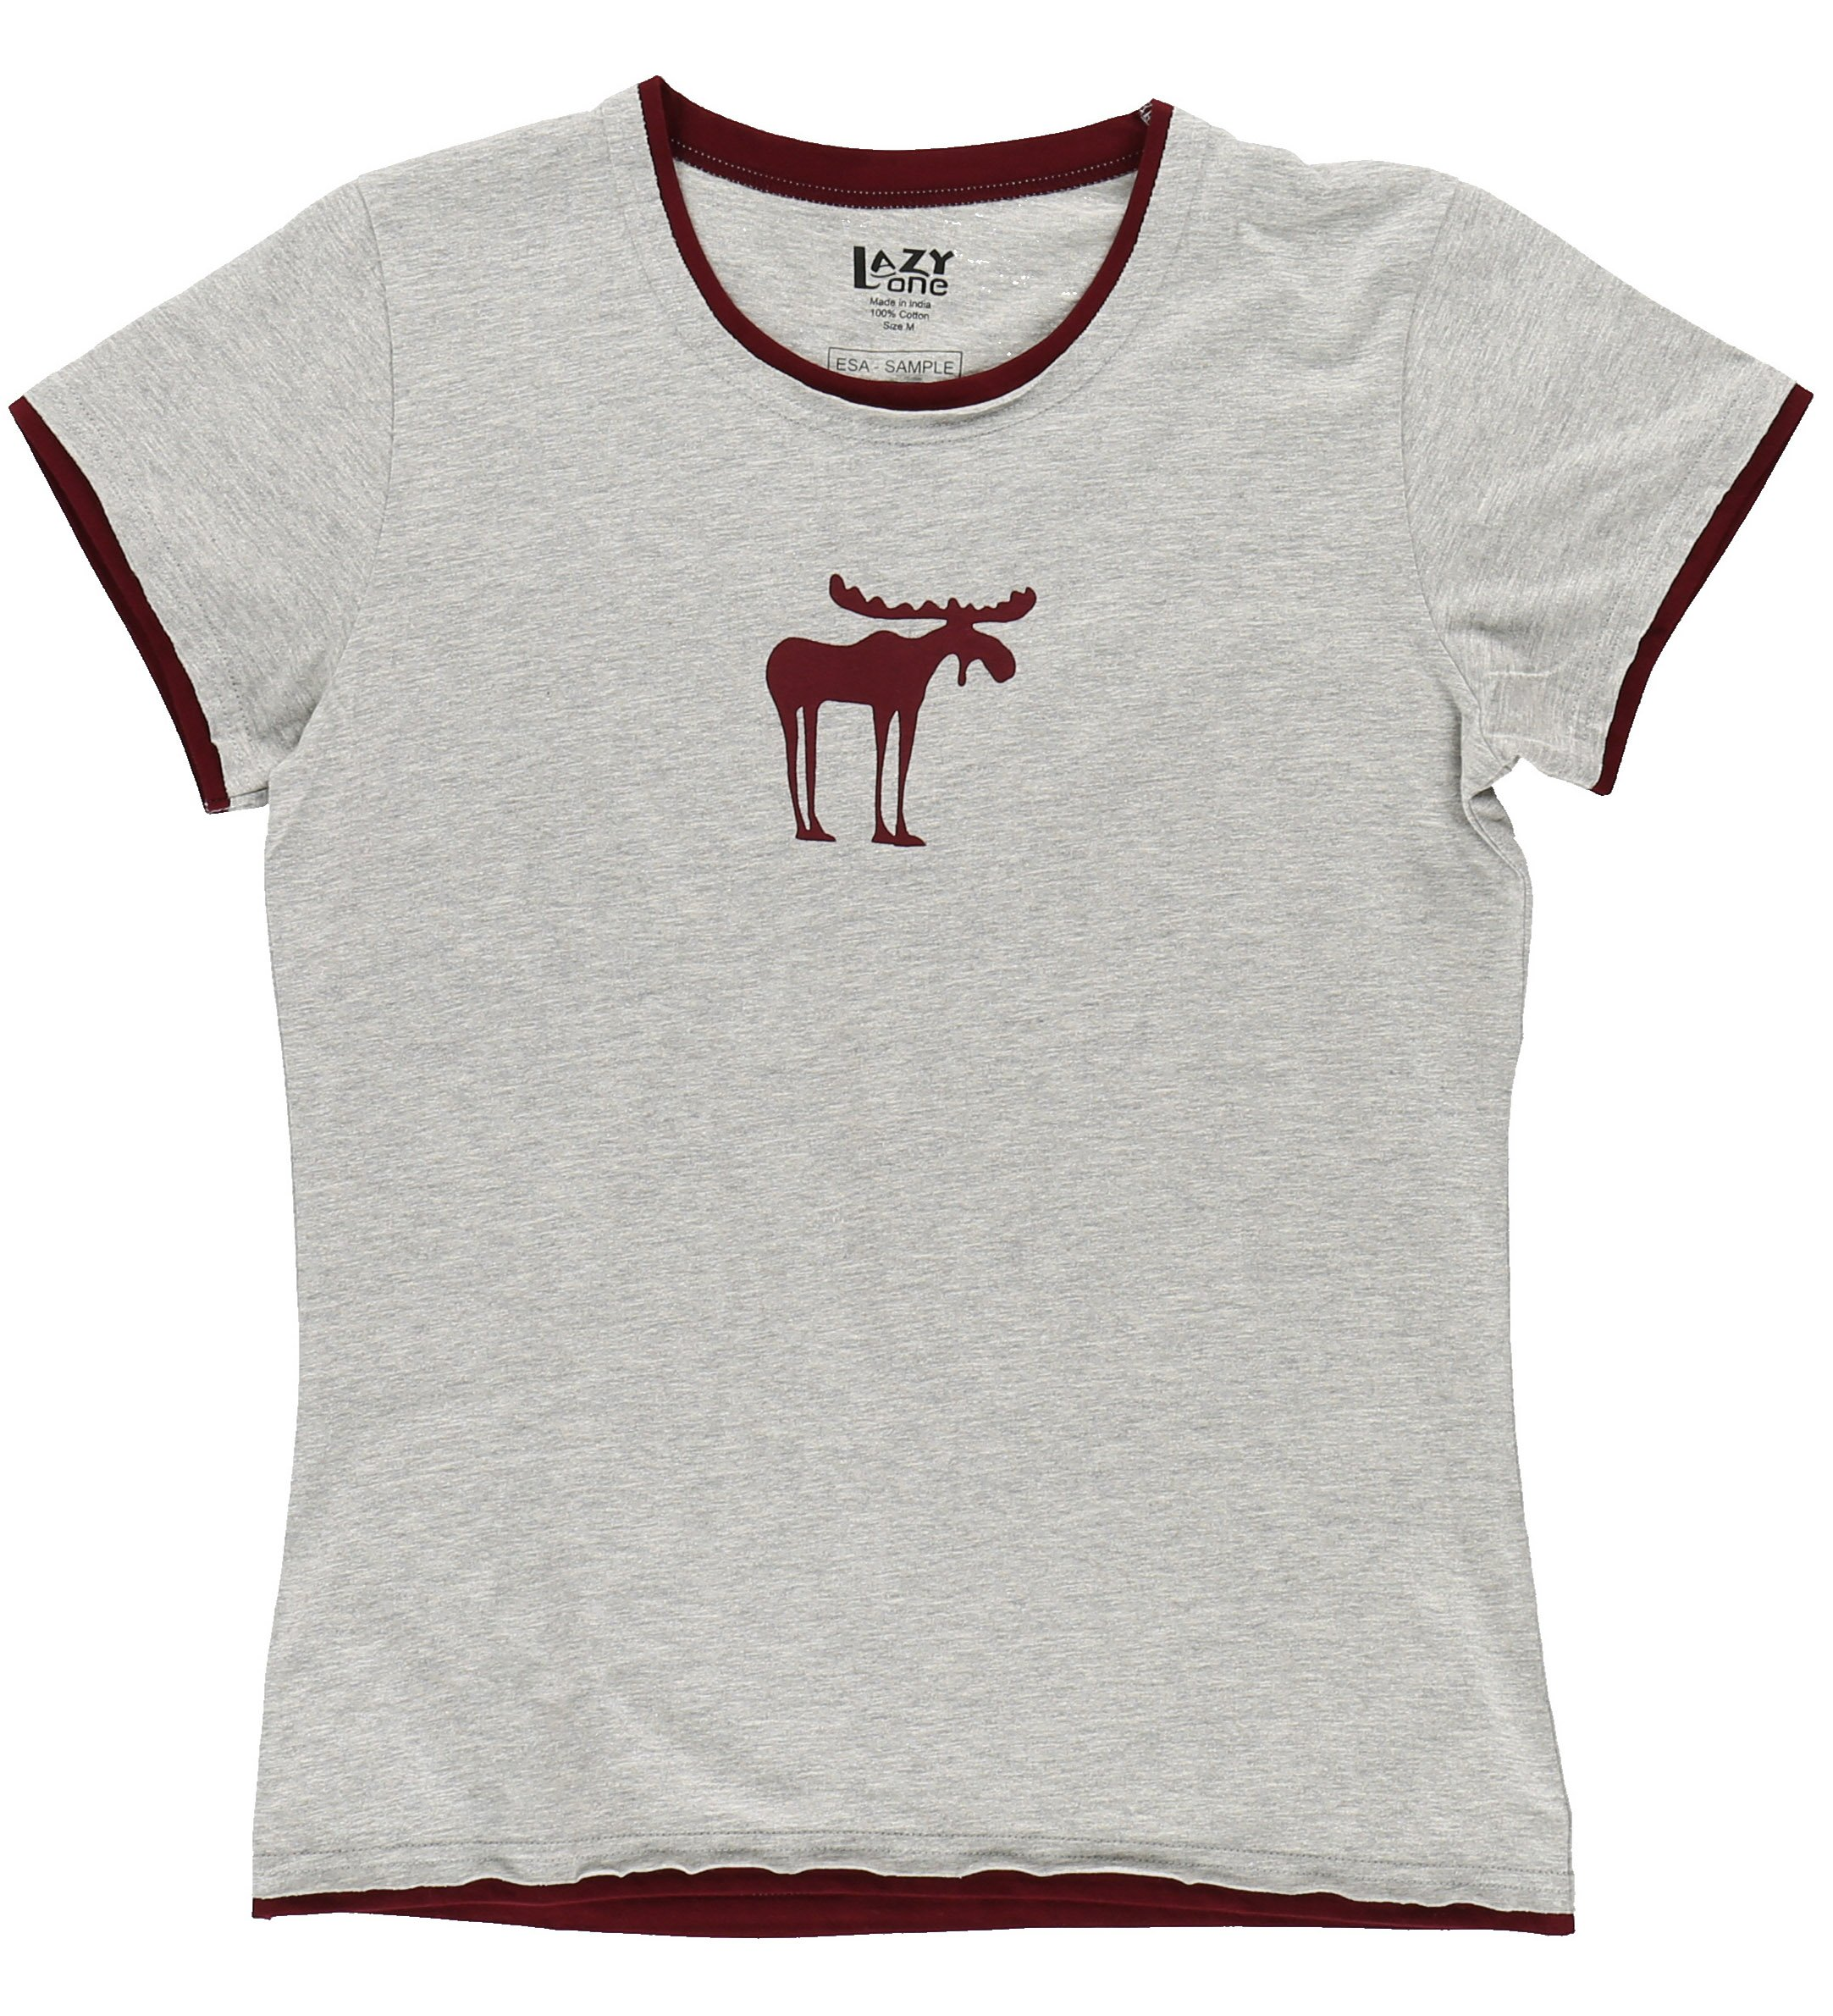 Funky Moose Women's Fitted Pajama Shirt TOP by